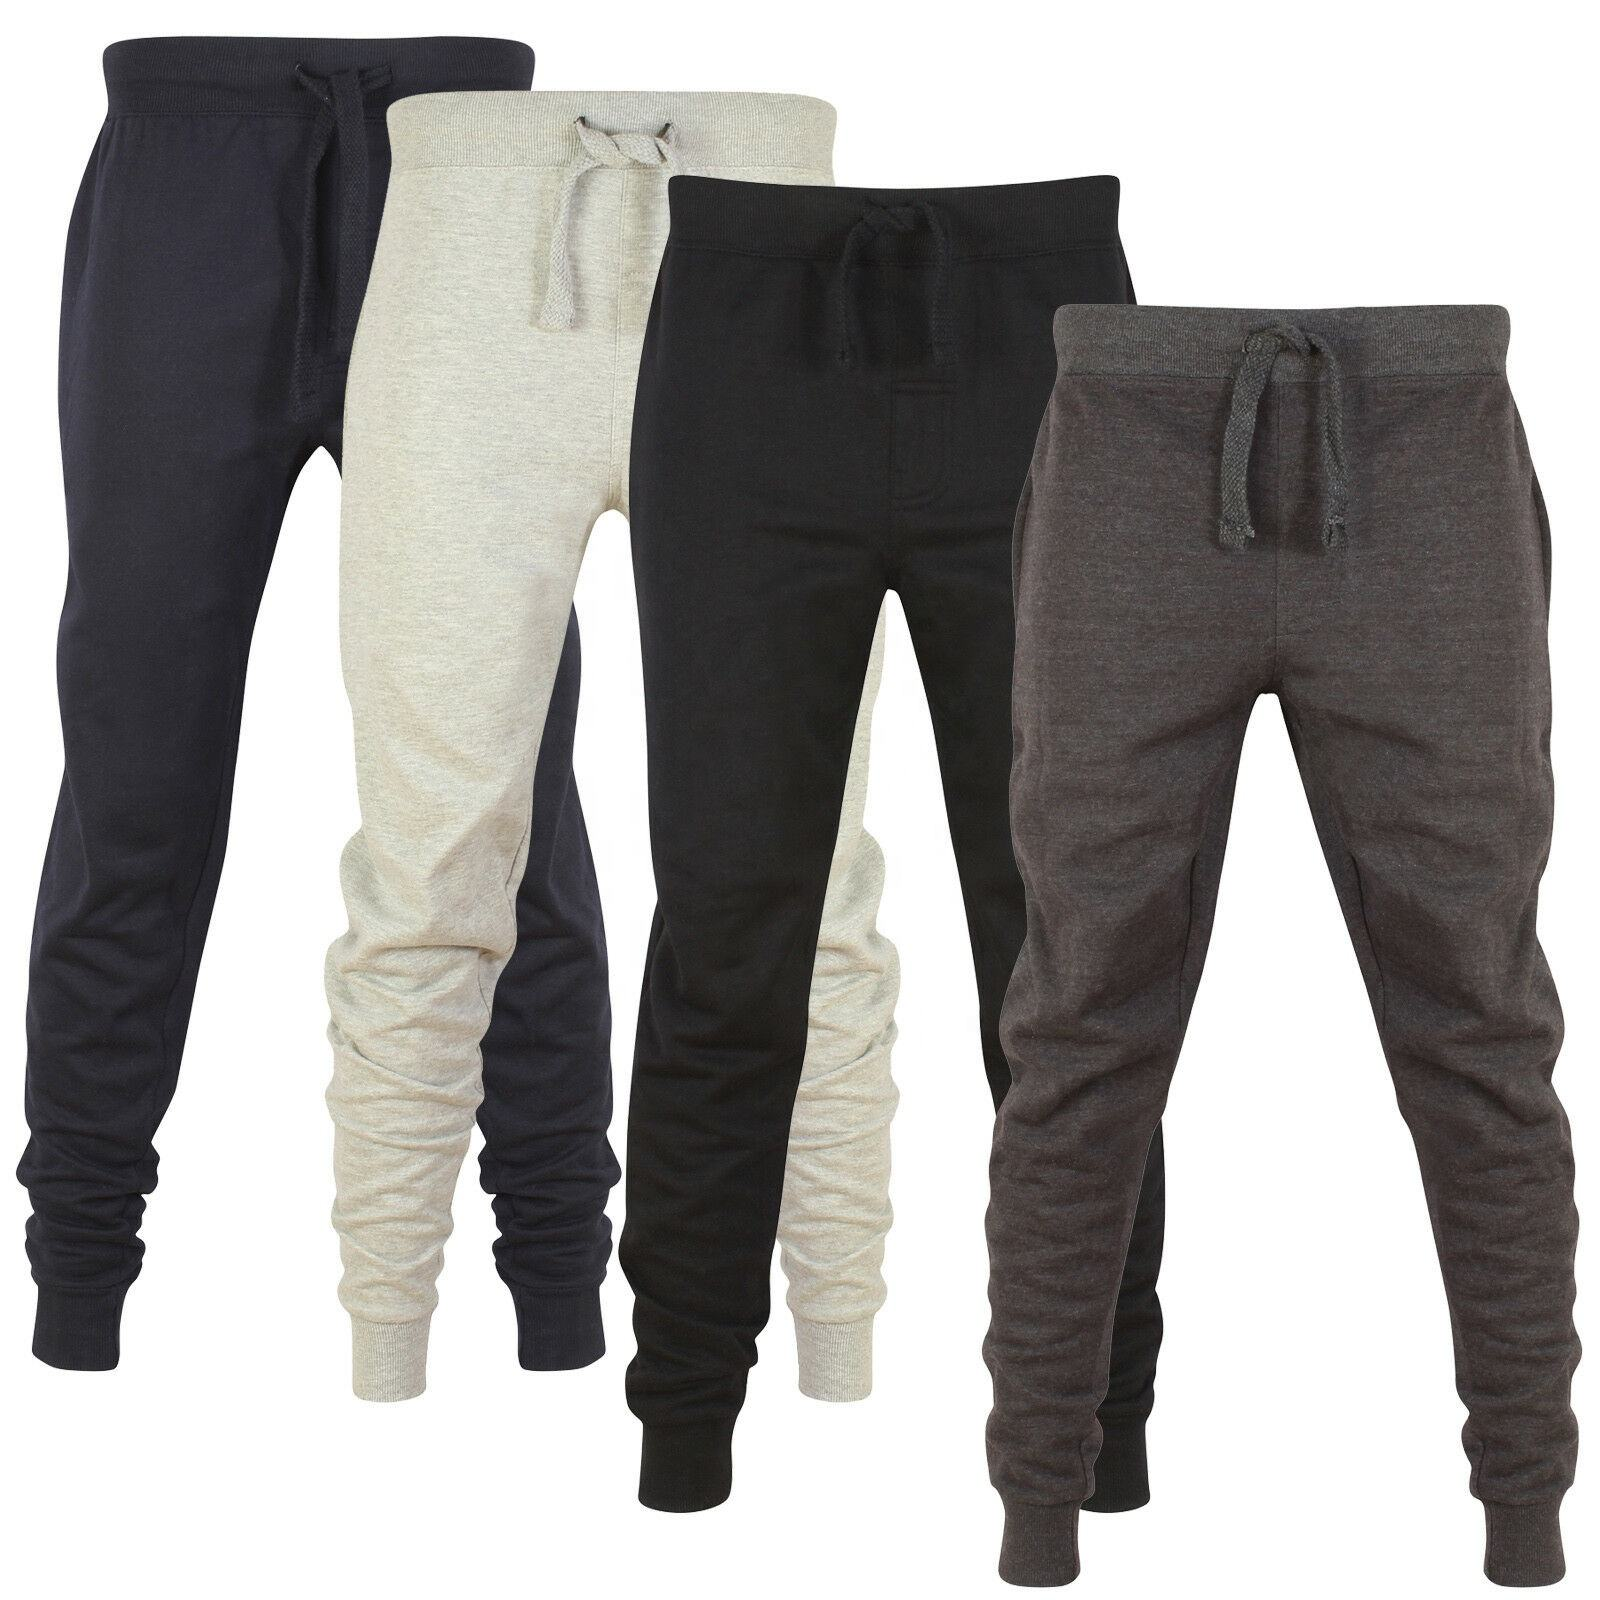 Mens Skinny Jogging Bodems Slim Fit Joggers Trainingspak Fleece Broek Gym Sweats